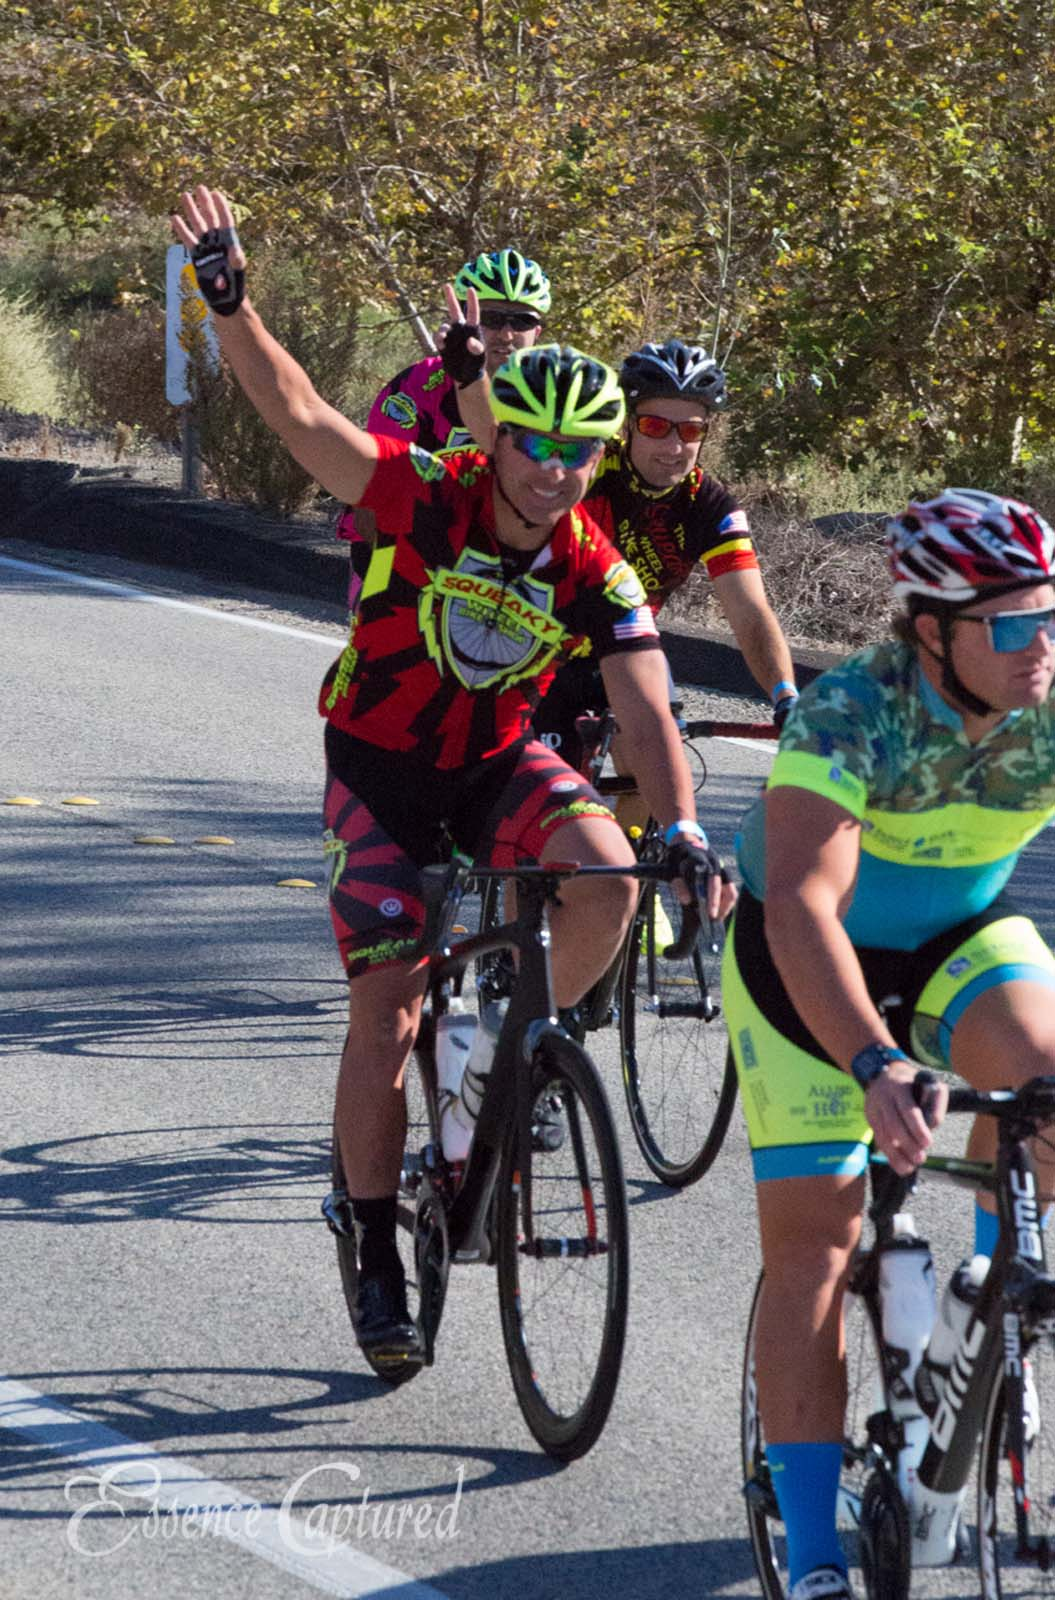 Mike Nosco Memorial Bike Ride cyclist waving red striped jersey green helmet